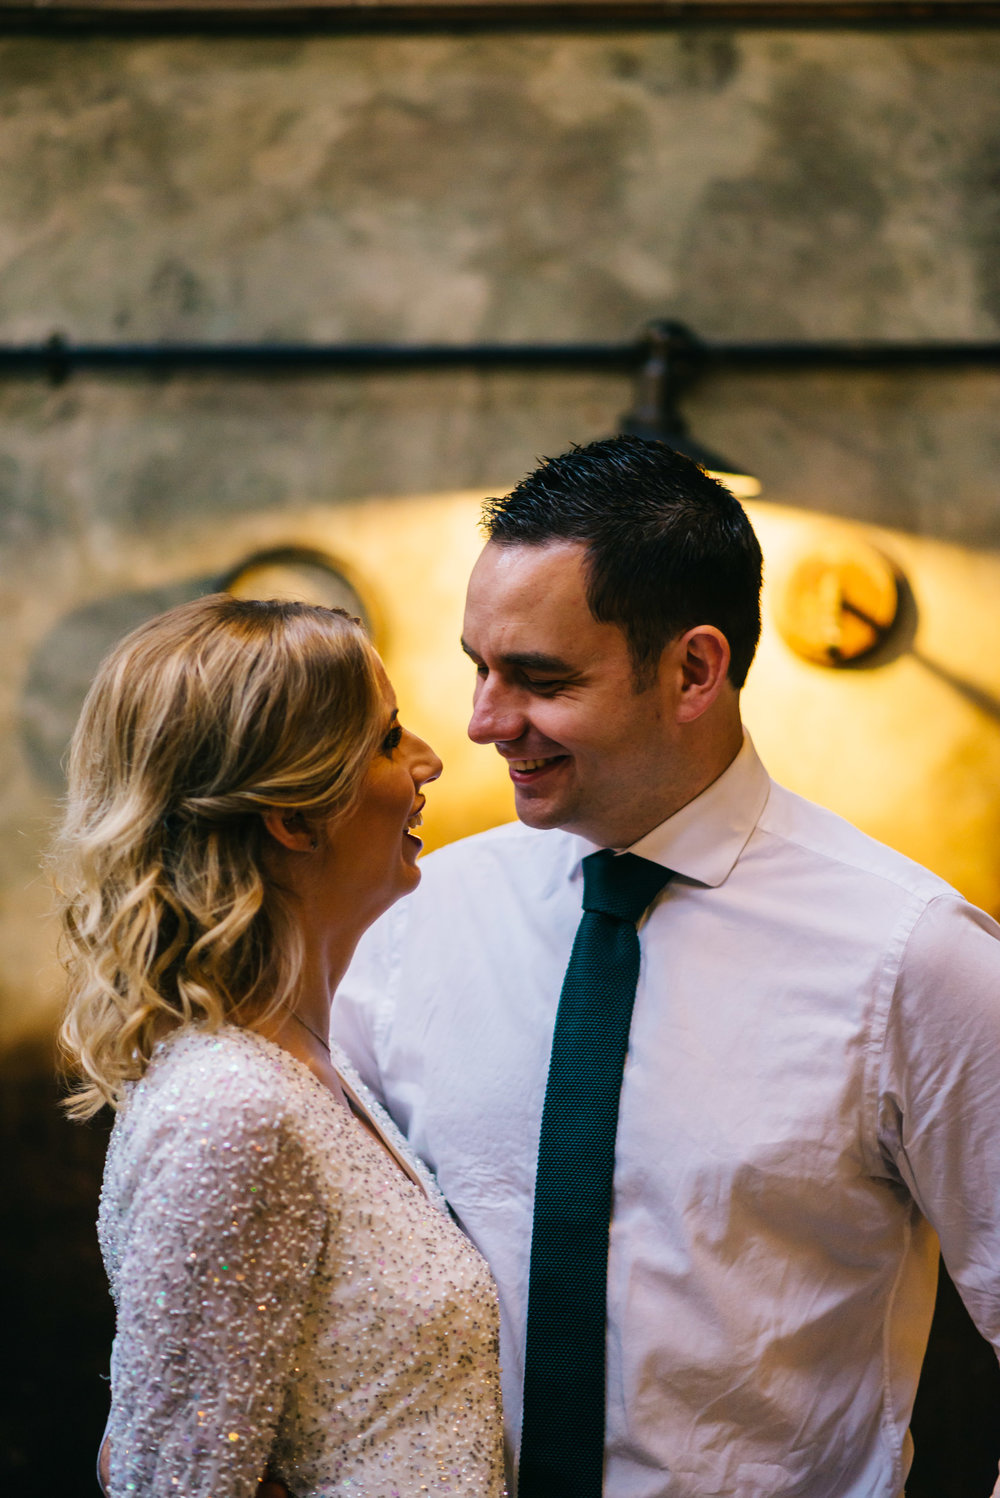 Holmes Mill, Clitheroe, Lancashire - Styled Wedding Shoot-10.jpg